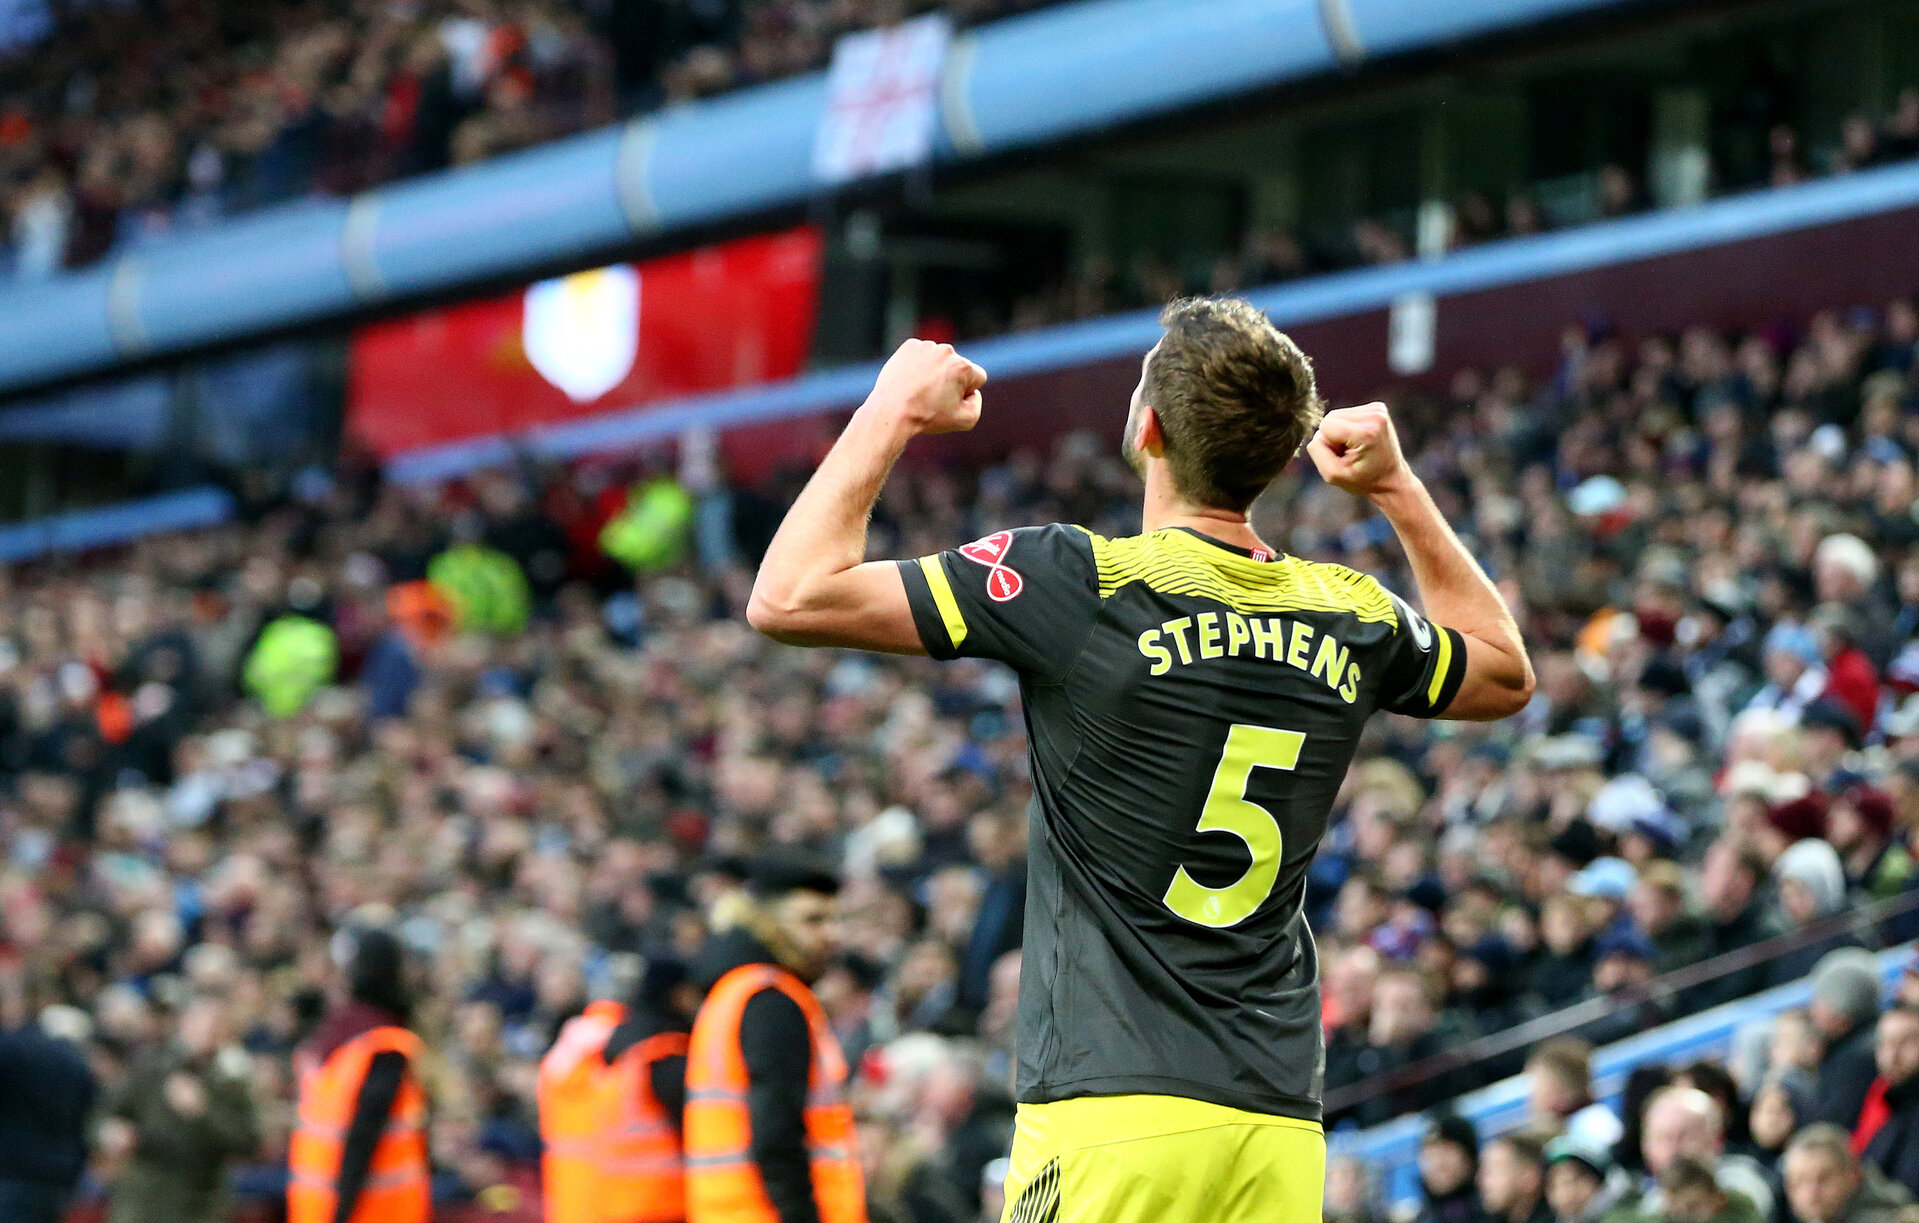 BIRMINGHAM, ENGLAND - DECEMBER 21: Jack Stephens of Southampton celebrates after scoring his teams second during the Premier League match between Aston Villa and Southampton FC at Villa Park on December 21, 2019 in Birmingham, United Kingdom. (Photo by Matt Watson/Southampton FC via Getty Images)